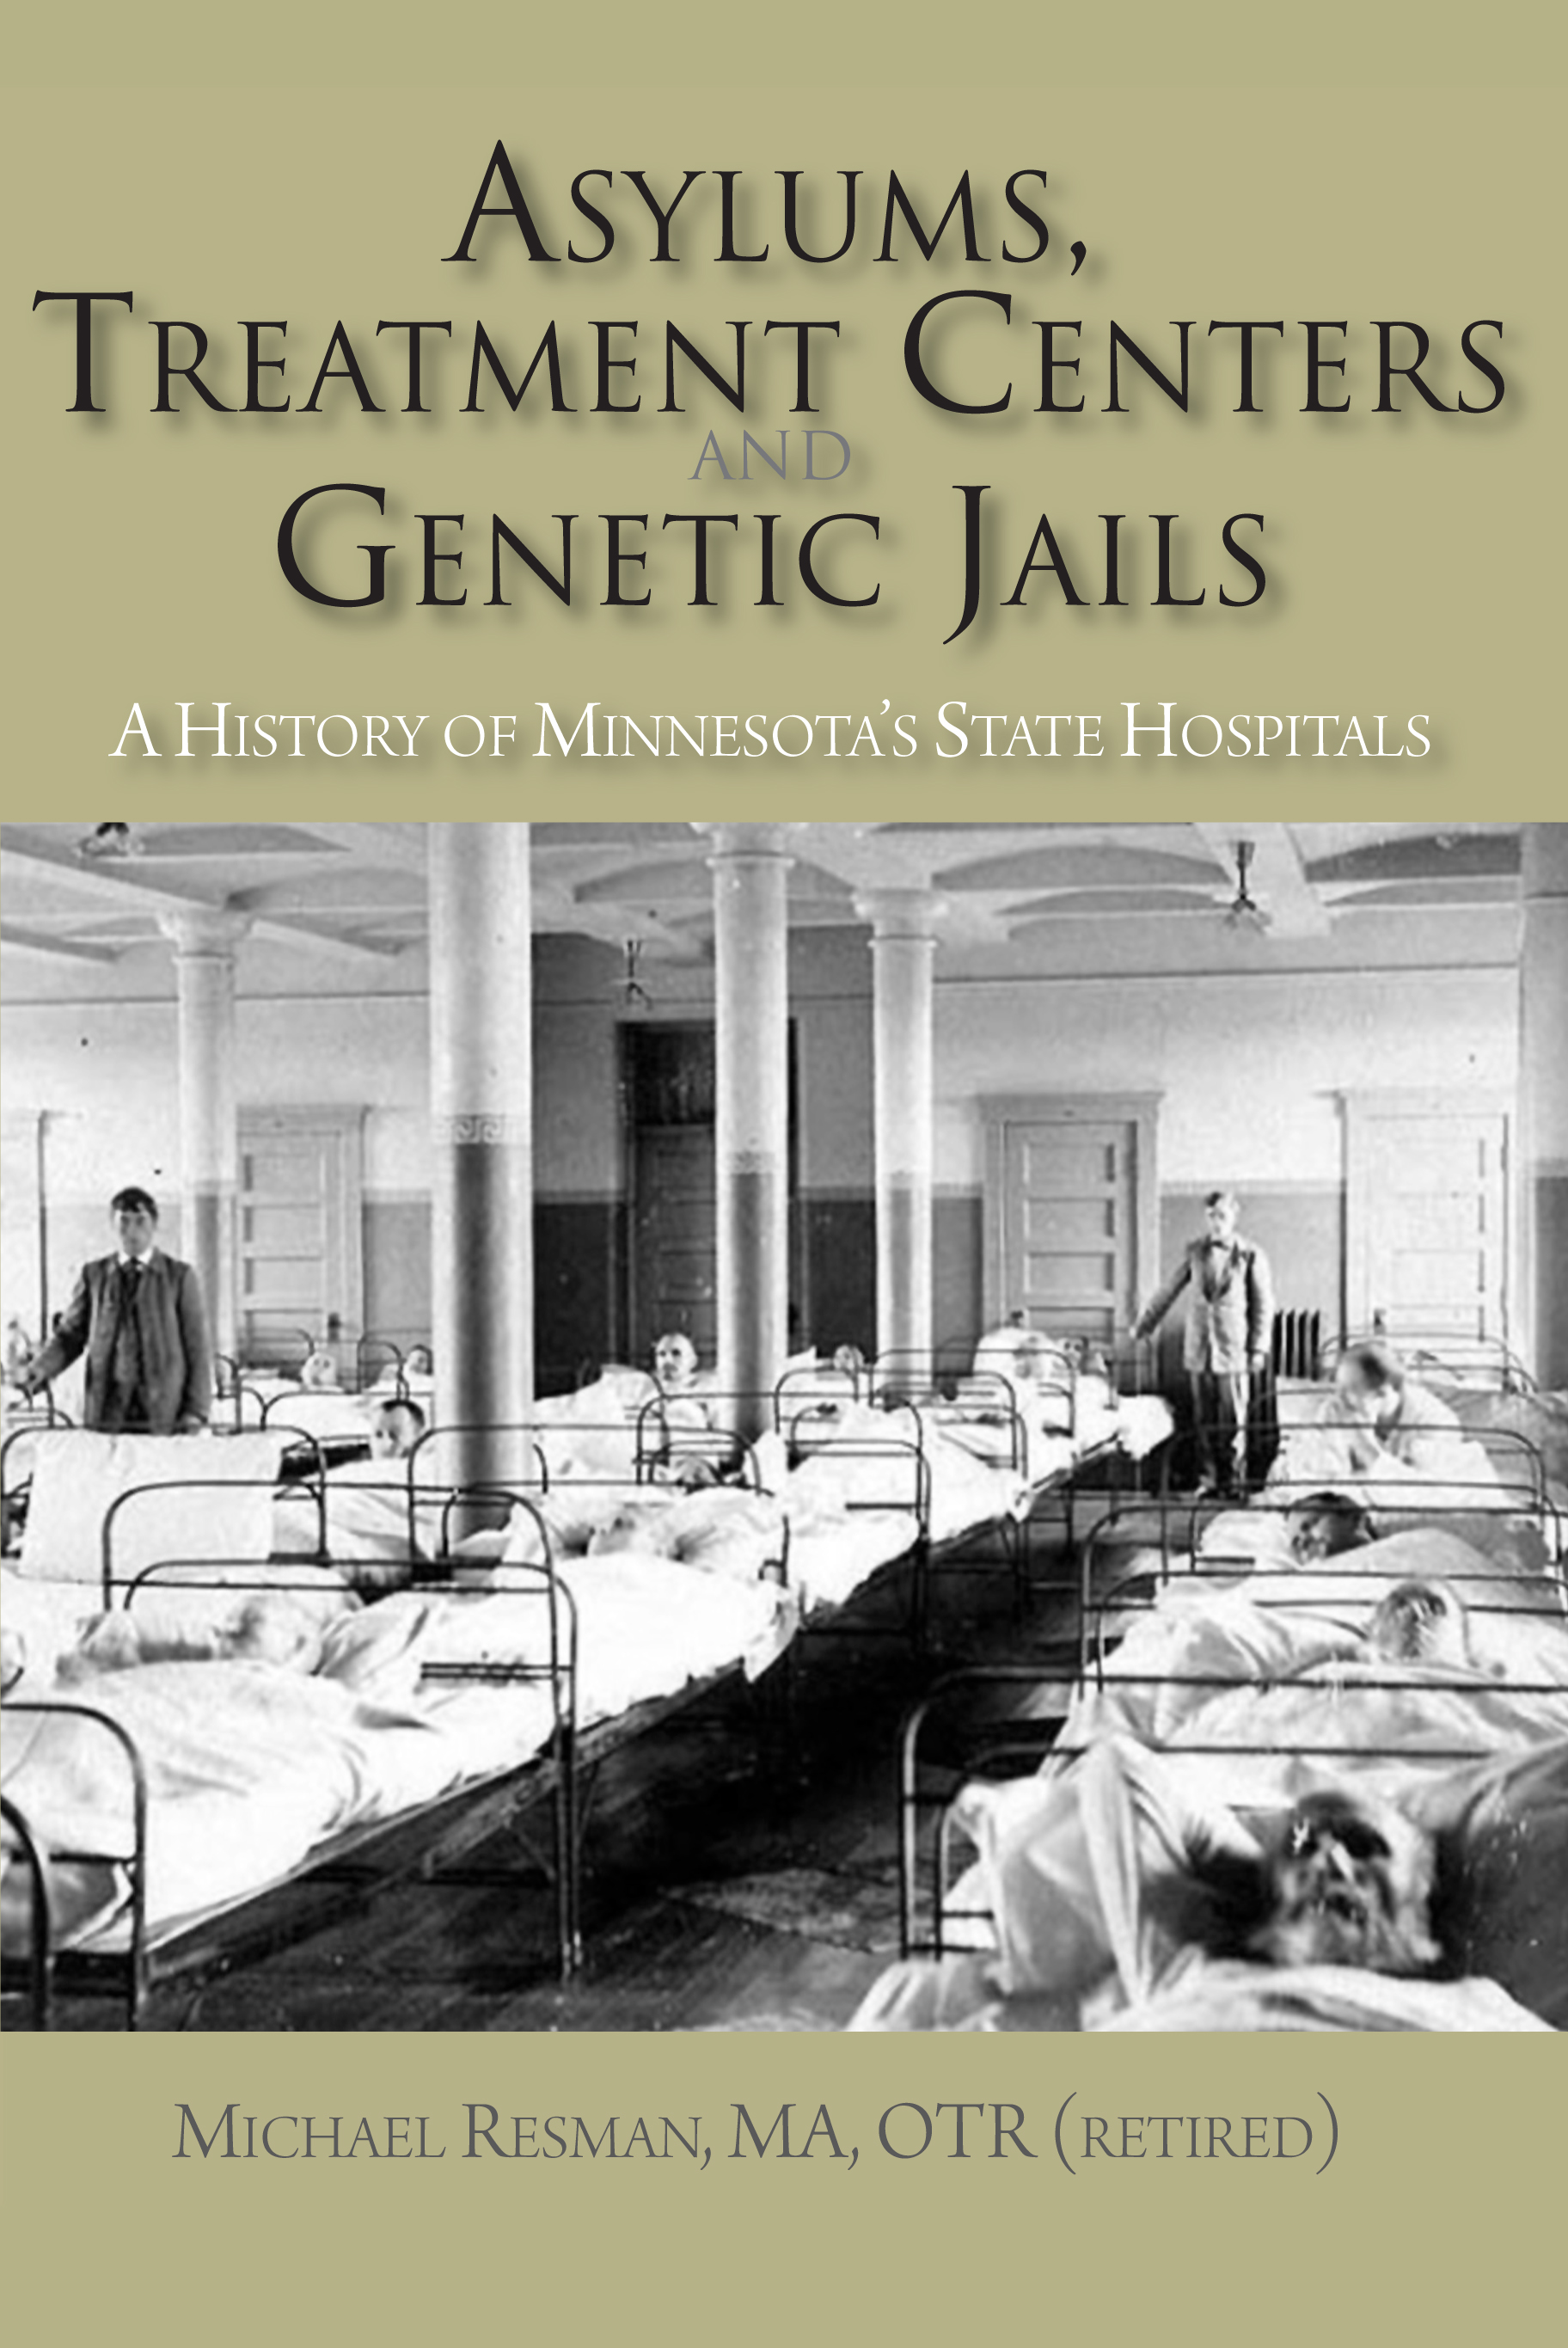 Asylums, Treatment Centers, and Genetic Jails